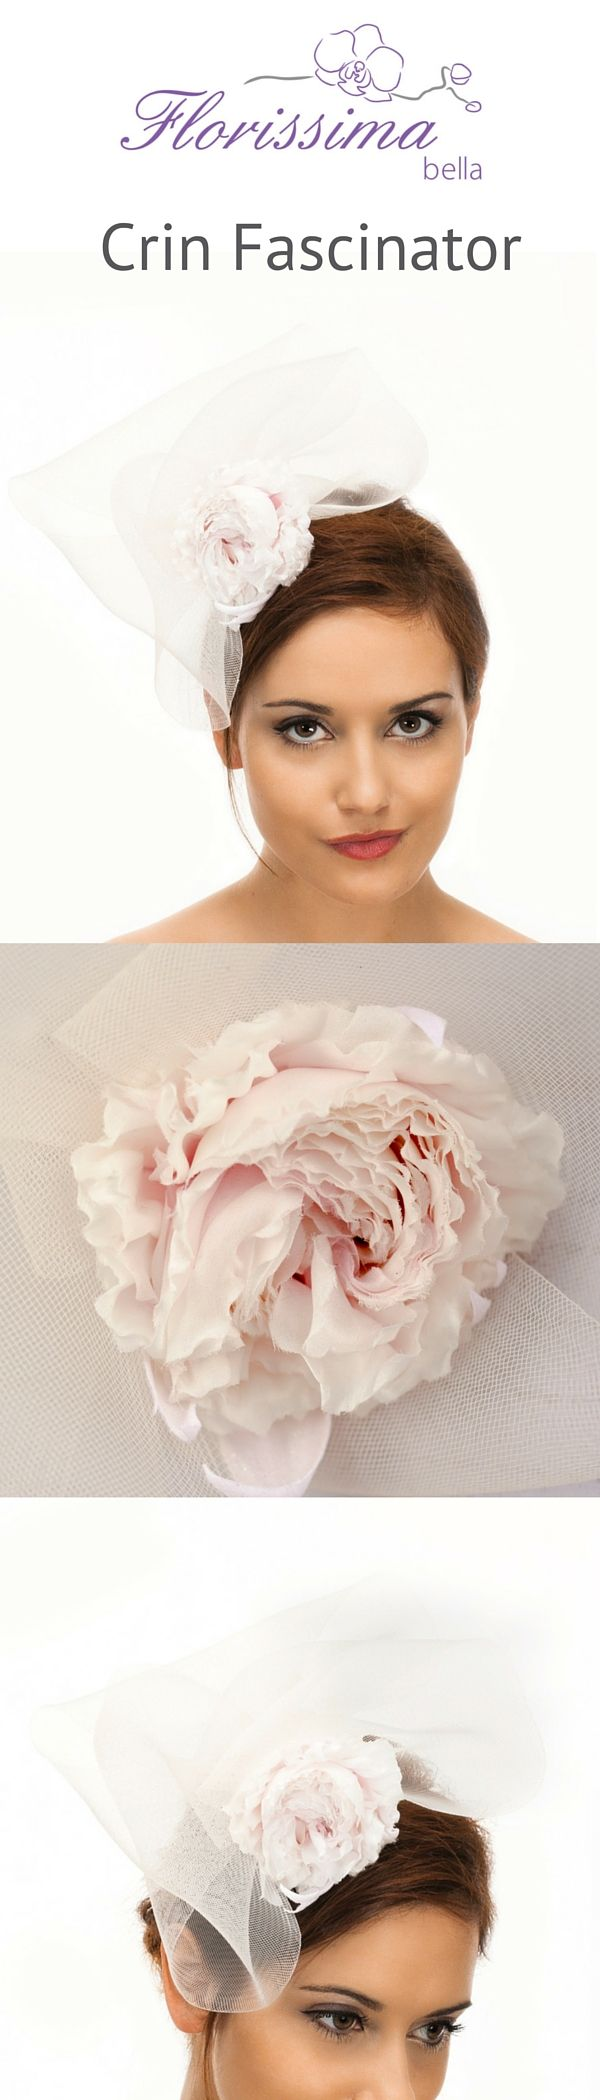 Off white crin fascinator with a handmade pink silk rose is an amazing accessory for a contemporary trendy bride. https://florissimabella.co.uk/product/crin-fascinator-2/